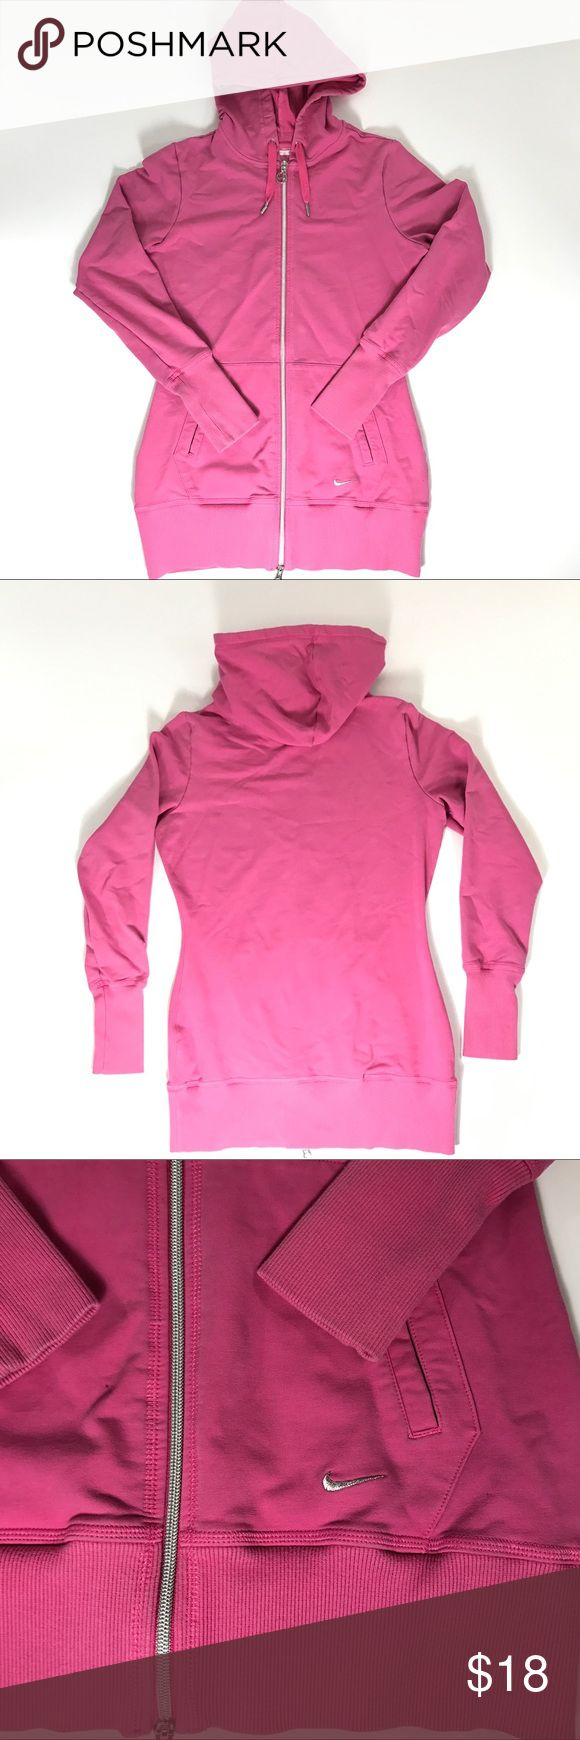 "Womens Nike Fit Dry Light Pink Hoodie Size Small No rips no stains the little metal clasp on the end of the hoodie string is been to see photos  Chest measures armpit to armpit 18""  Length measured middle back from bottom collar to bottom 26.5 Nike Jackets & Coats"